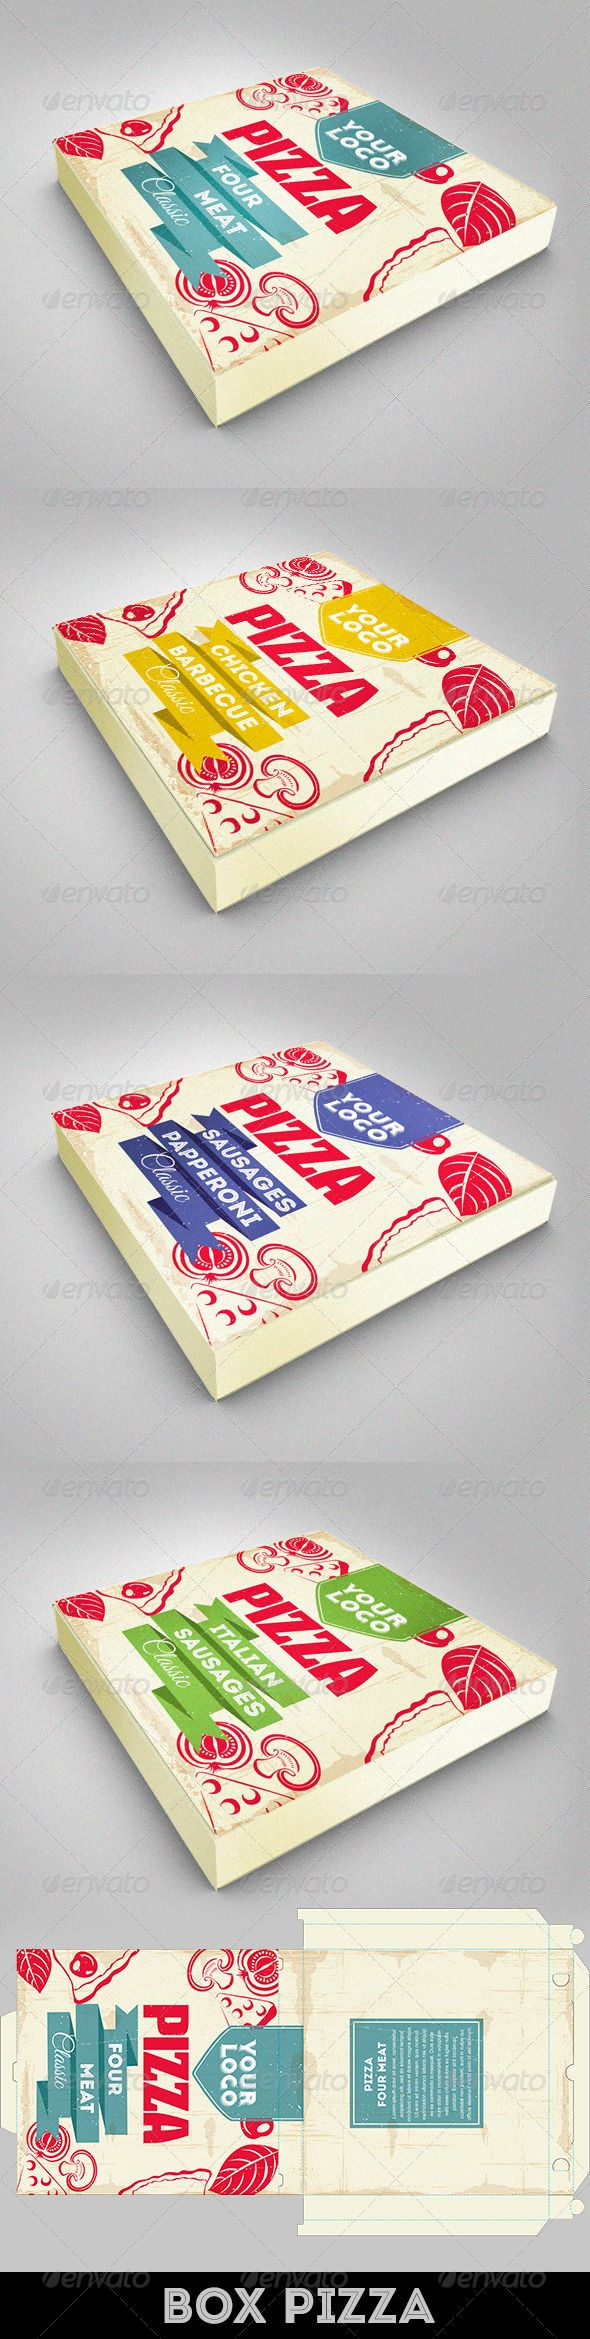 Design Pizza Box - Packaging Print Templates